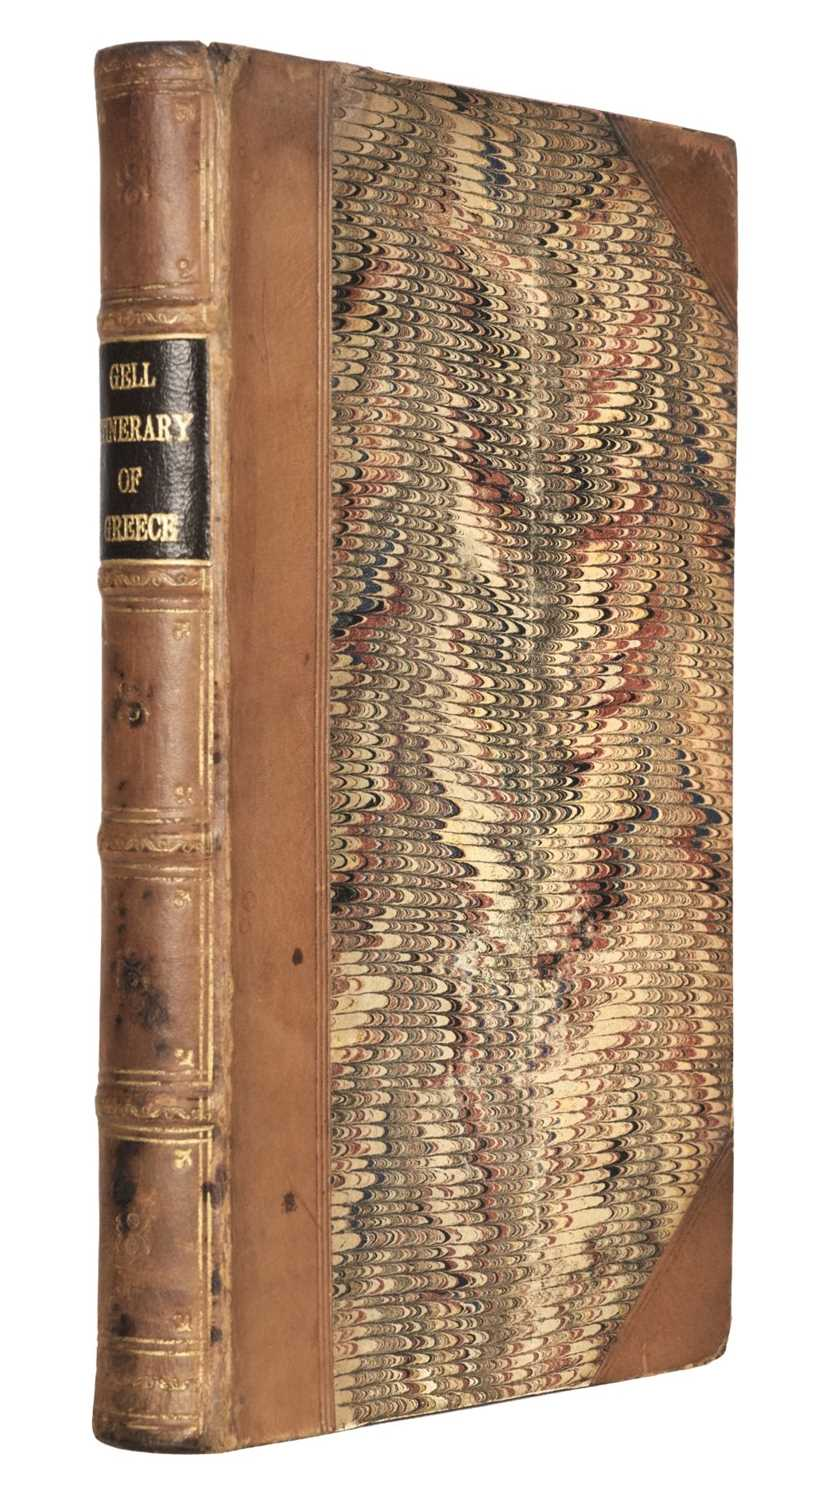 Lot 14 - Gell (Sir William). The Itinerary of Greece, 1st edition, 1819